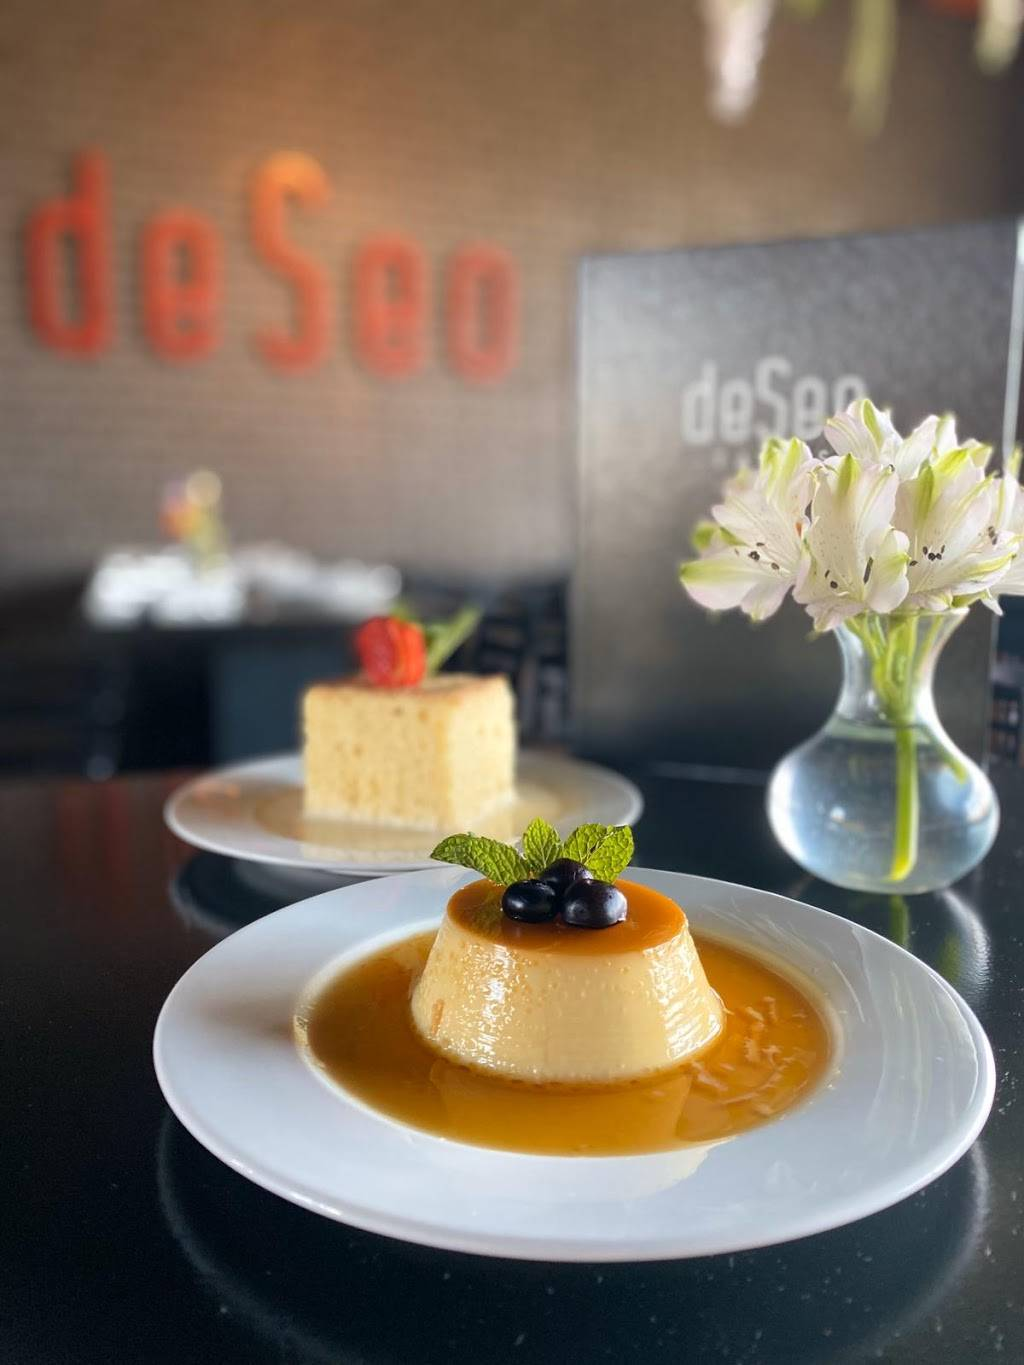 deSeo Tapas | restaurant | 2185 ROUTE 22 W, Union, NJ 07083, USA | 9082060060 OR +1 908-206-0060